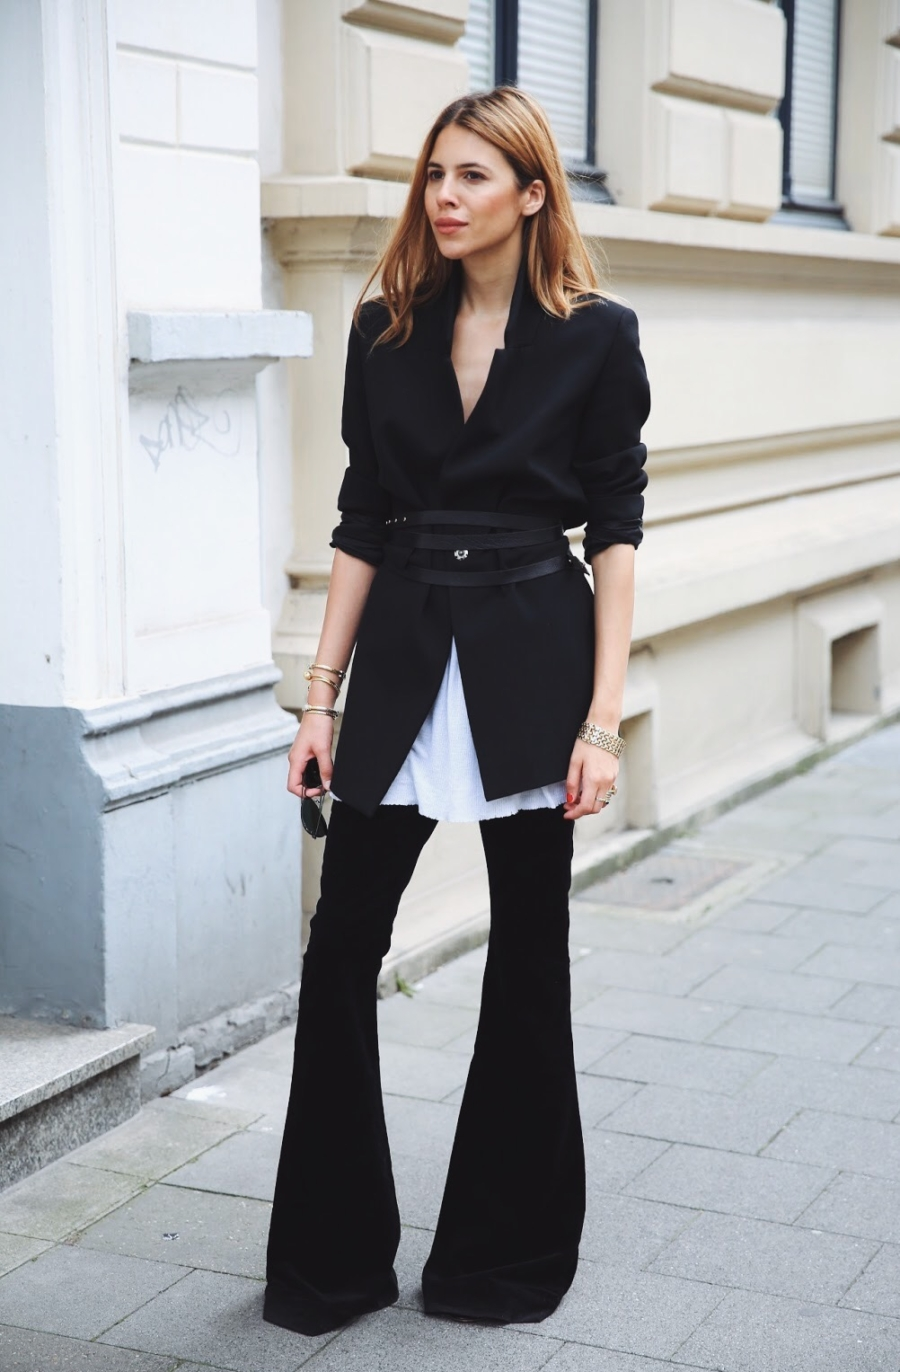 Structured Blazer - 7 Pieces to Spice Up Your Work Outfit // Notjessfashion.com